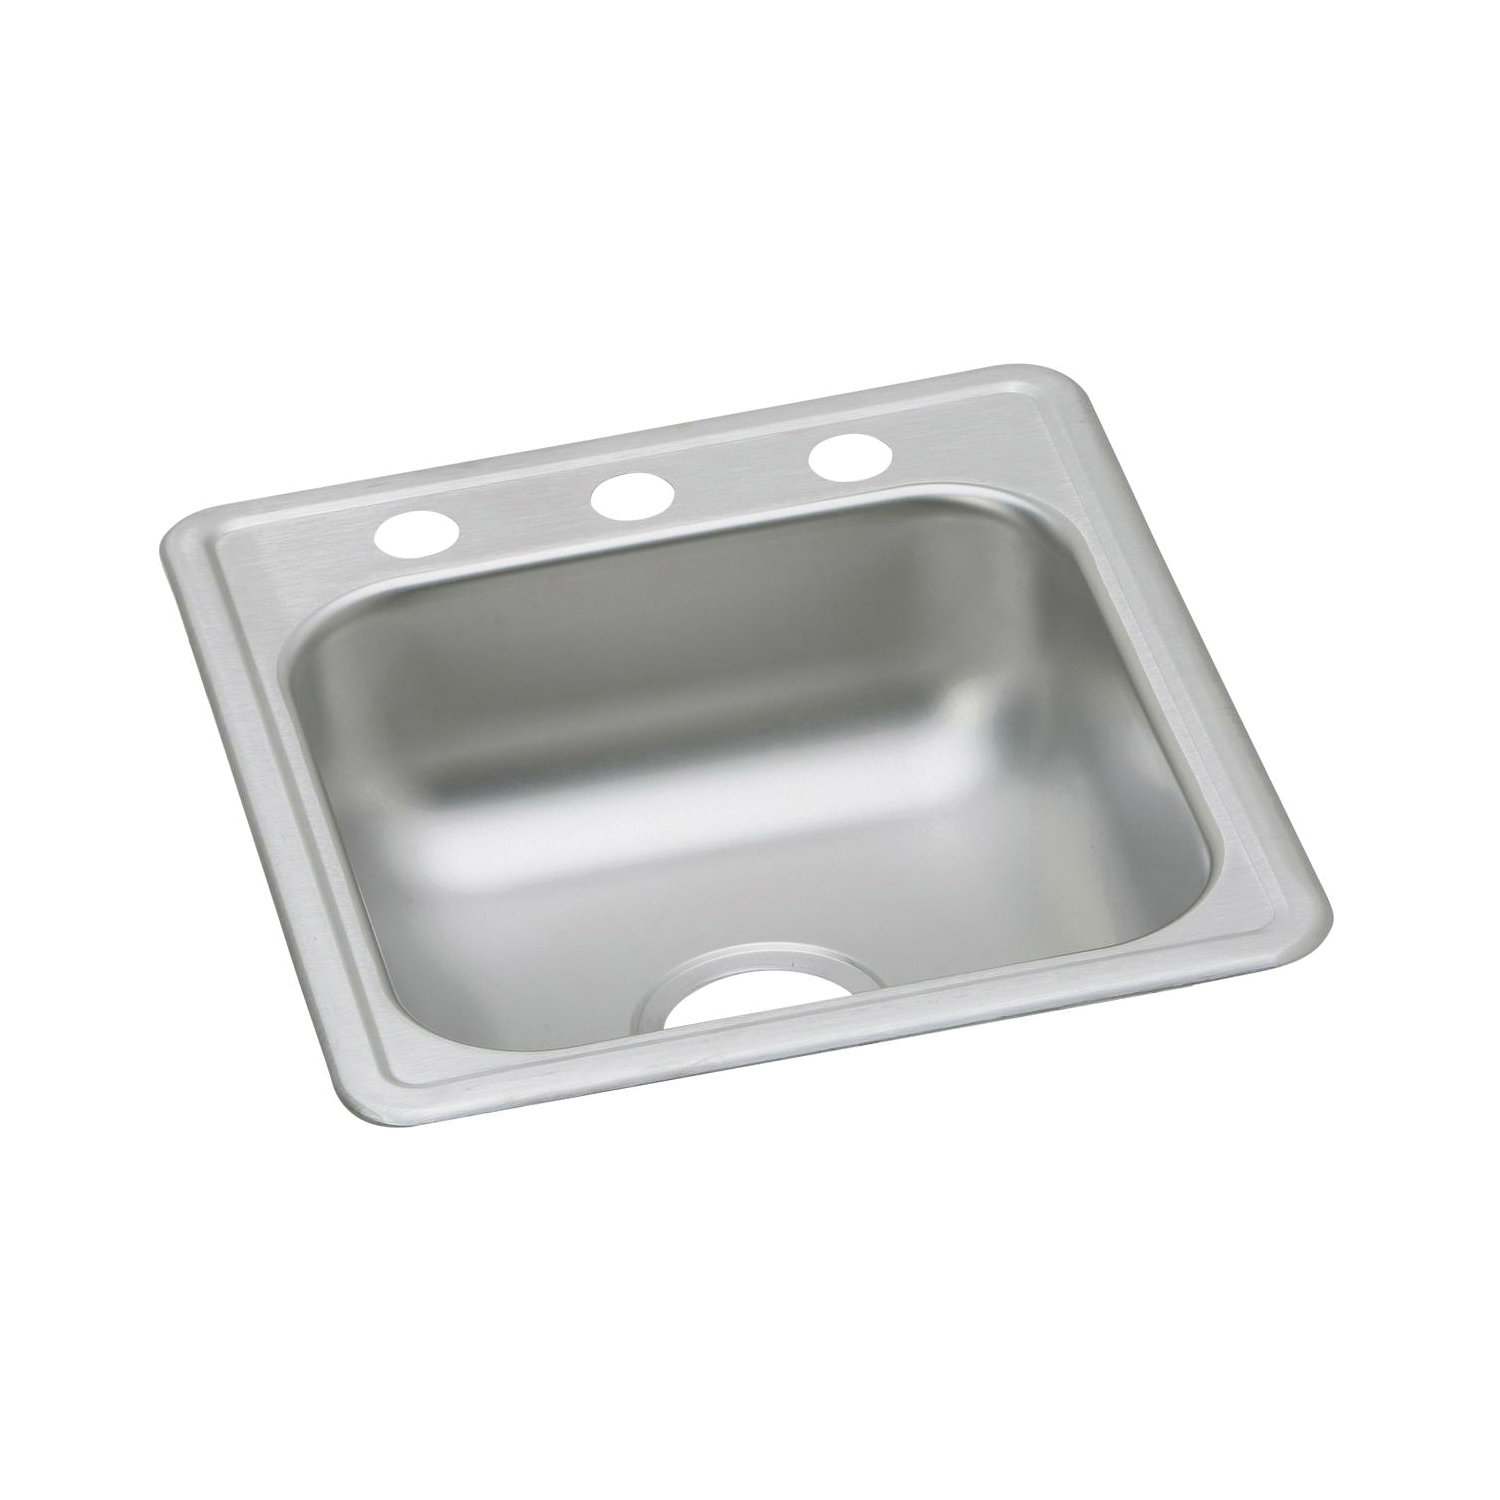 Elkay D117193 Dayton Bar Sink, Rectangular, 3 Faucet Holes, 19 in W x 6-3/16 in D x 17 in H, Top Mount, Stainless Steel, Satin